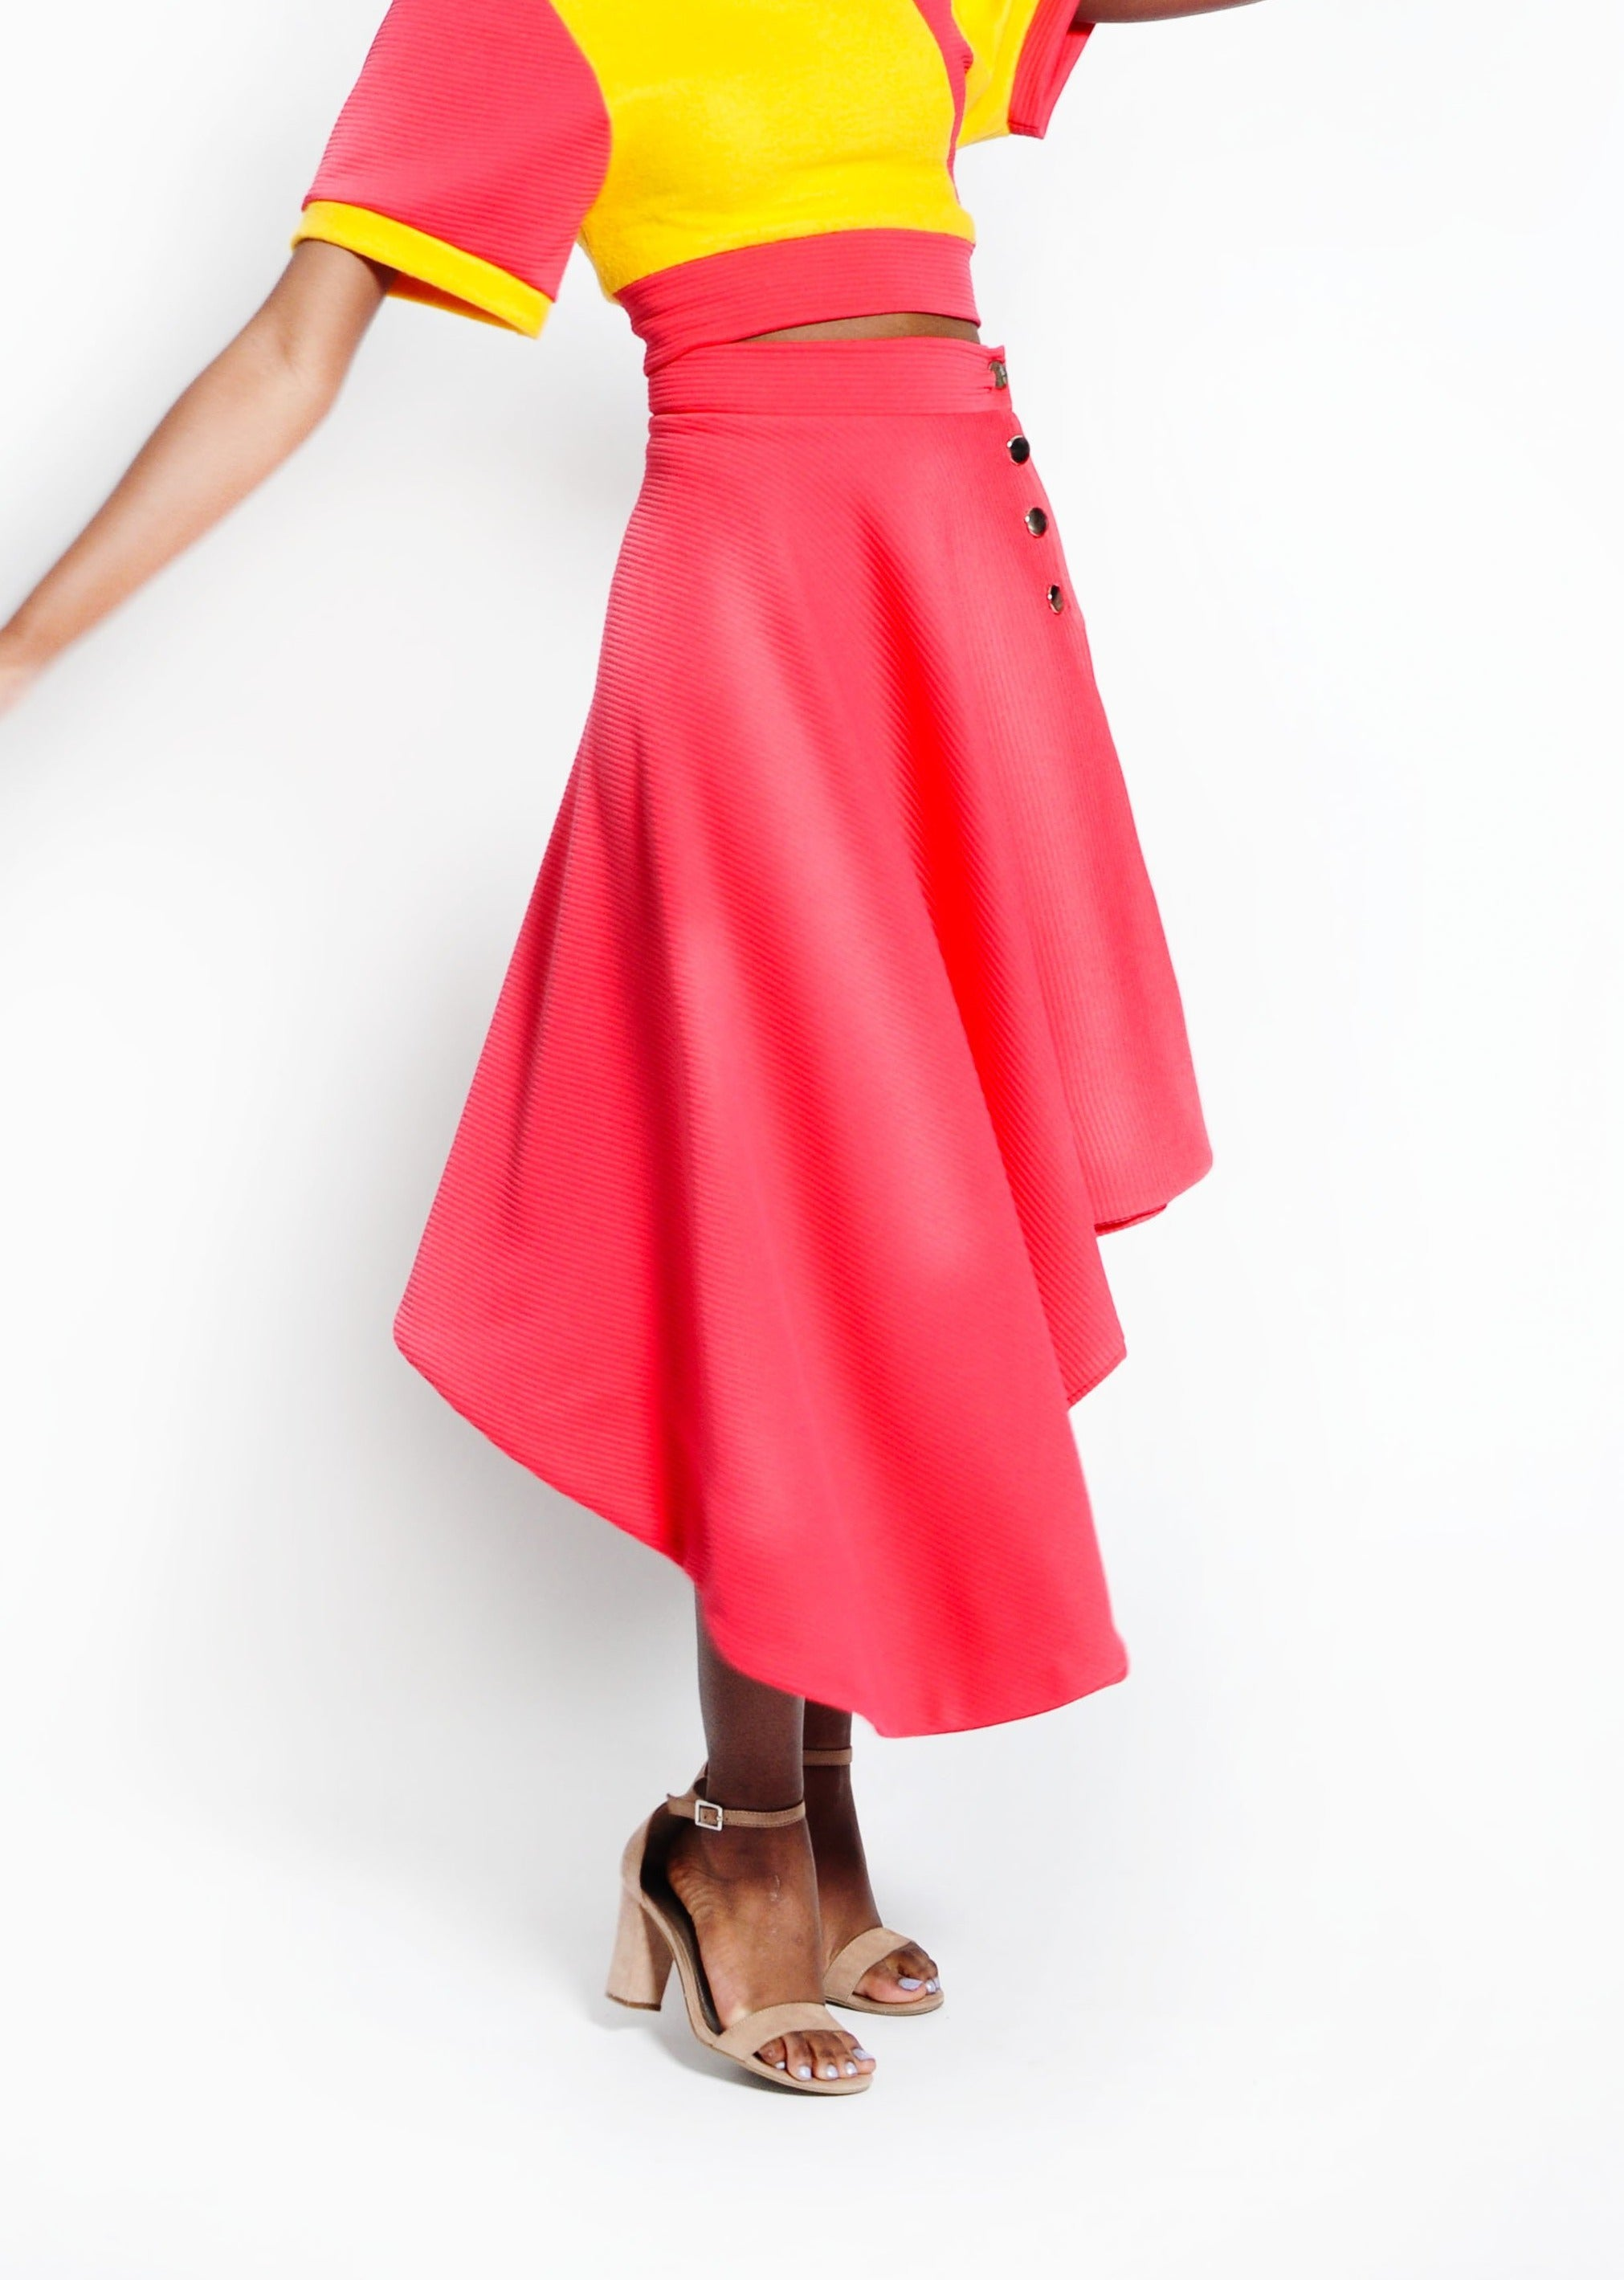 THE QUAY SKIRT